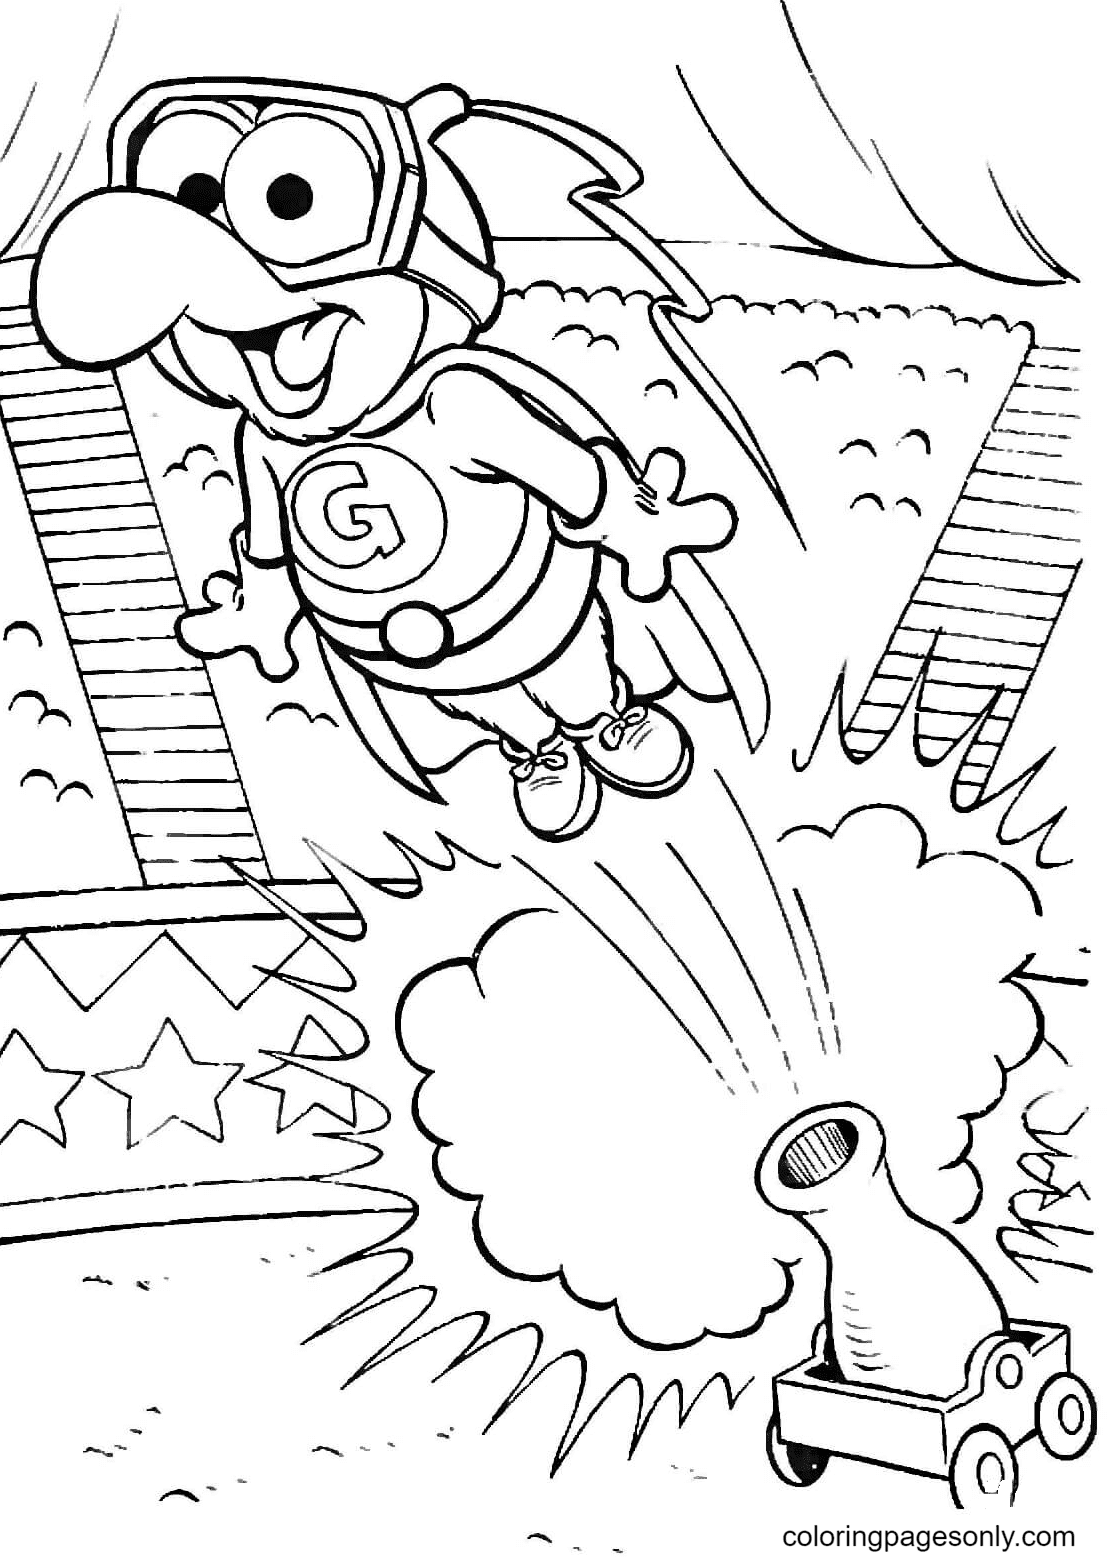 Super Gonzo Coloring Page